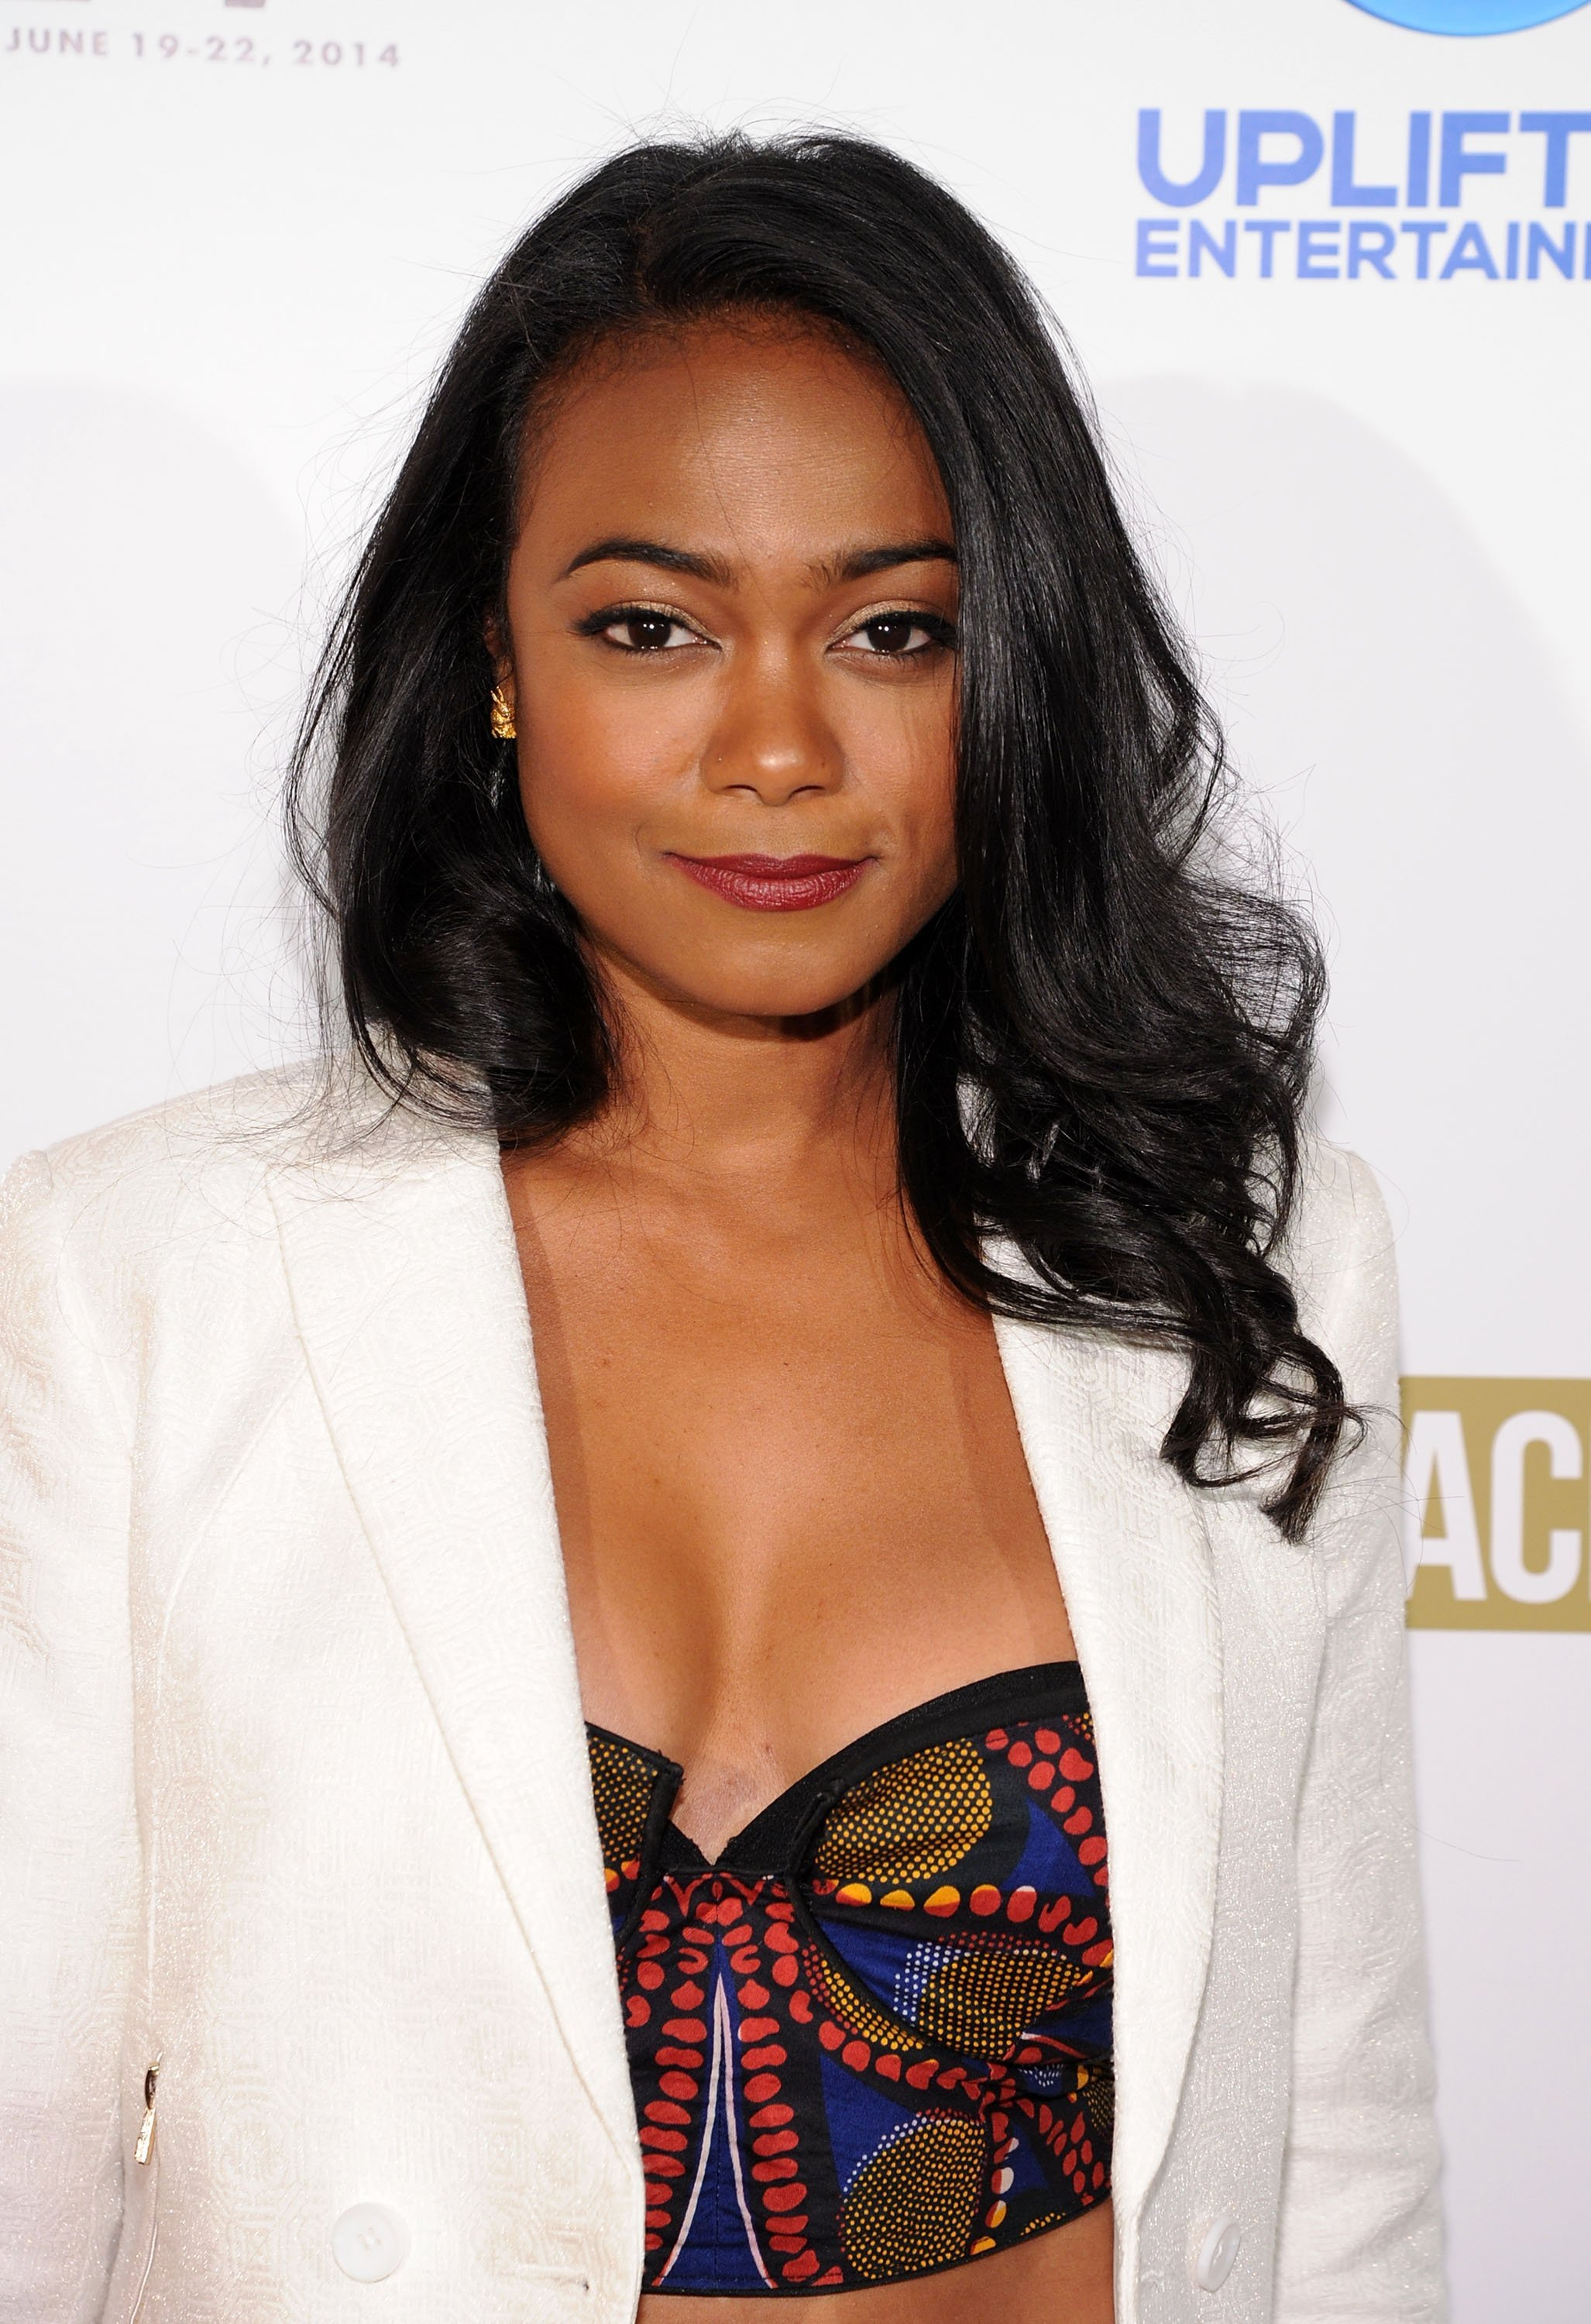 Tatyana Ali on June 21, 2014 in New York City | Source: Getty Images